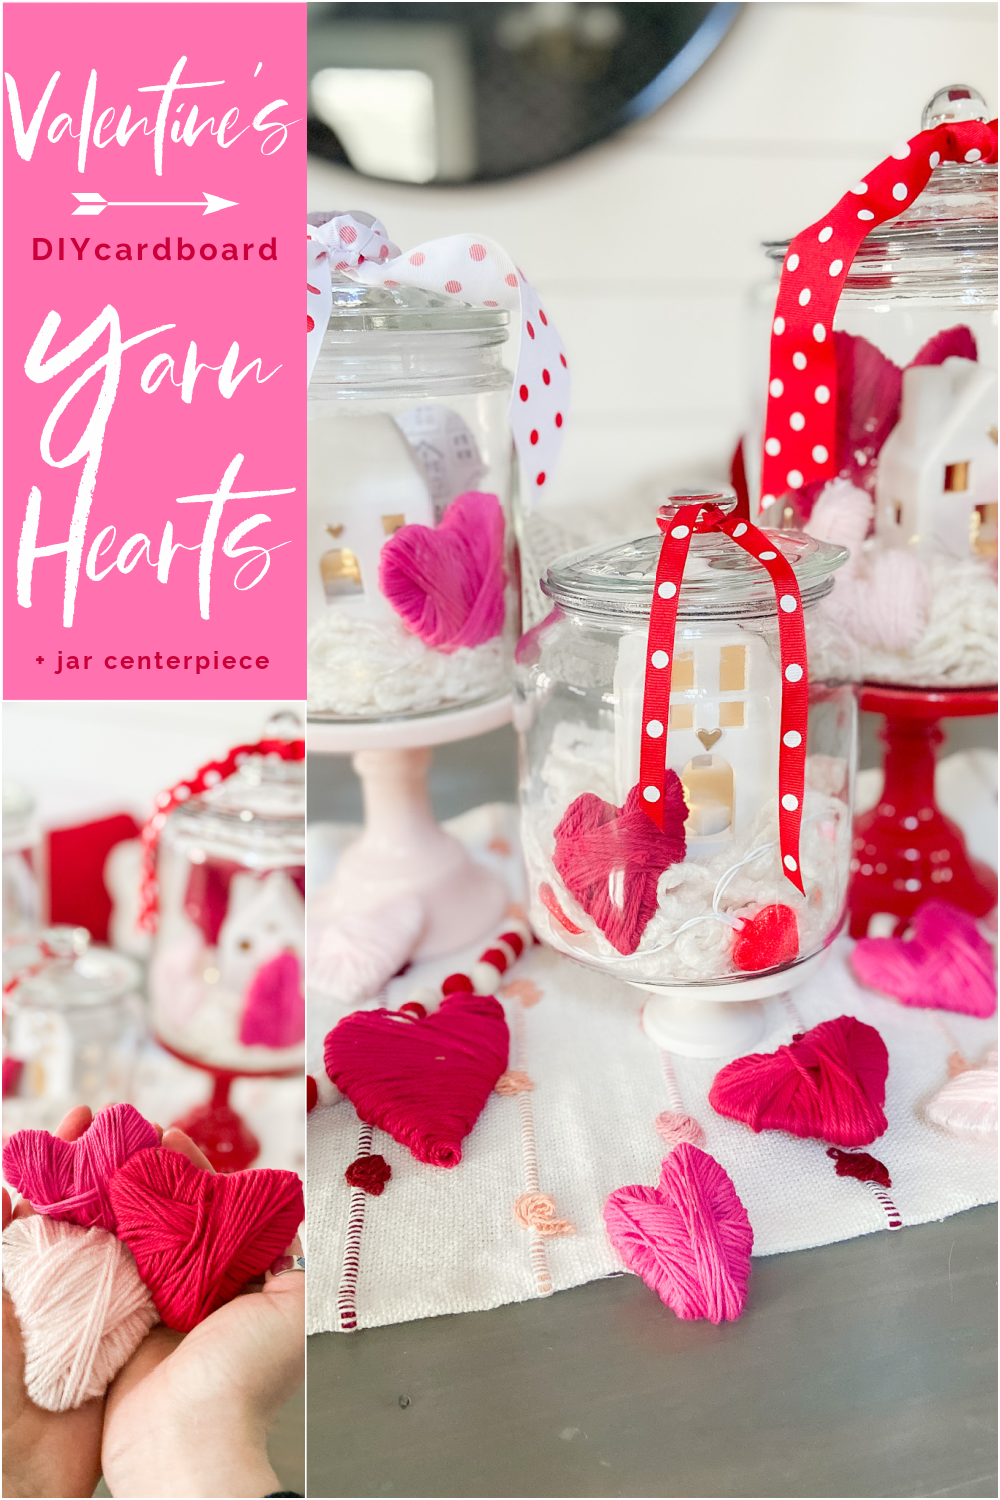 Valentine's Day Yarn-Wrap Cardboard Hearts + Centerpiece. Yarn-wrapped cardboard hearts are so simple to make and can be used for all kinds of Valentine's Day crafts. Add them to clear jars for a pretty centerpiece idea!